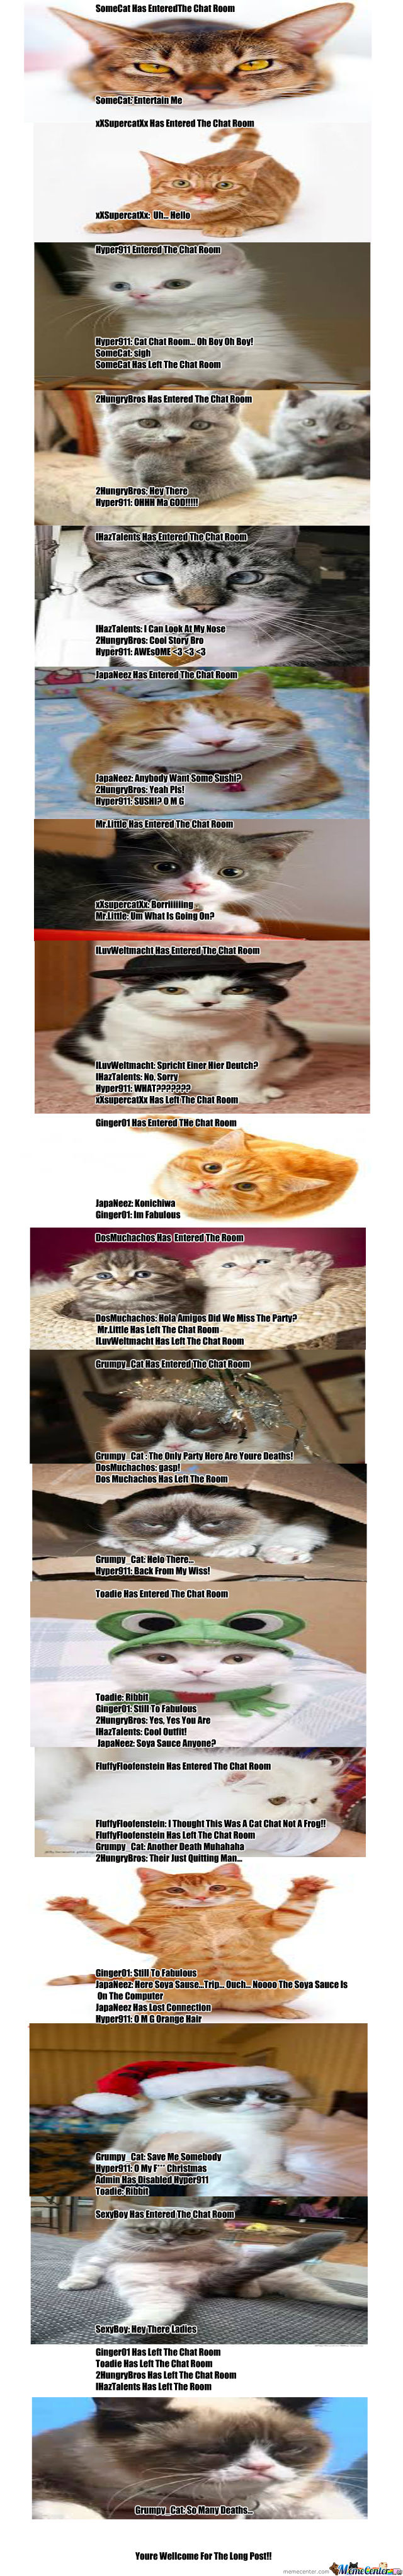 Cat Chat Rooms